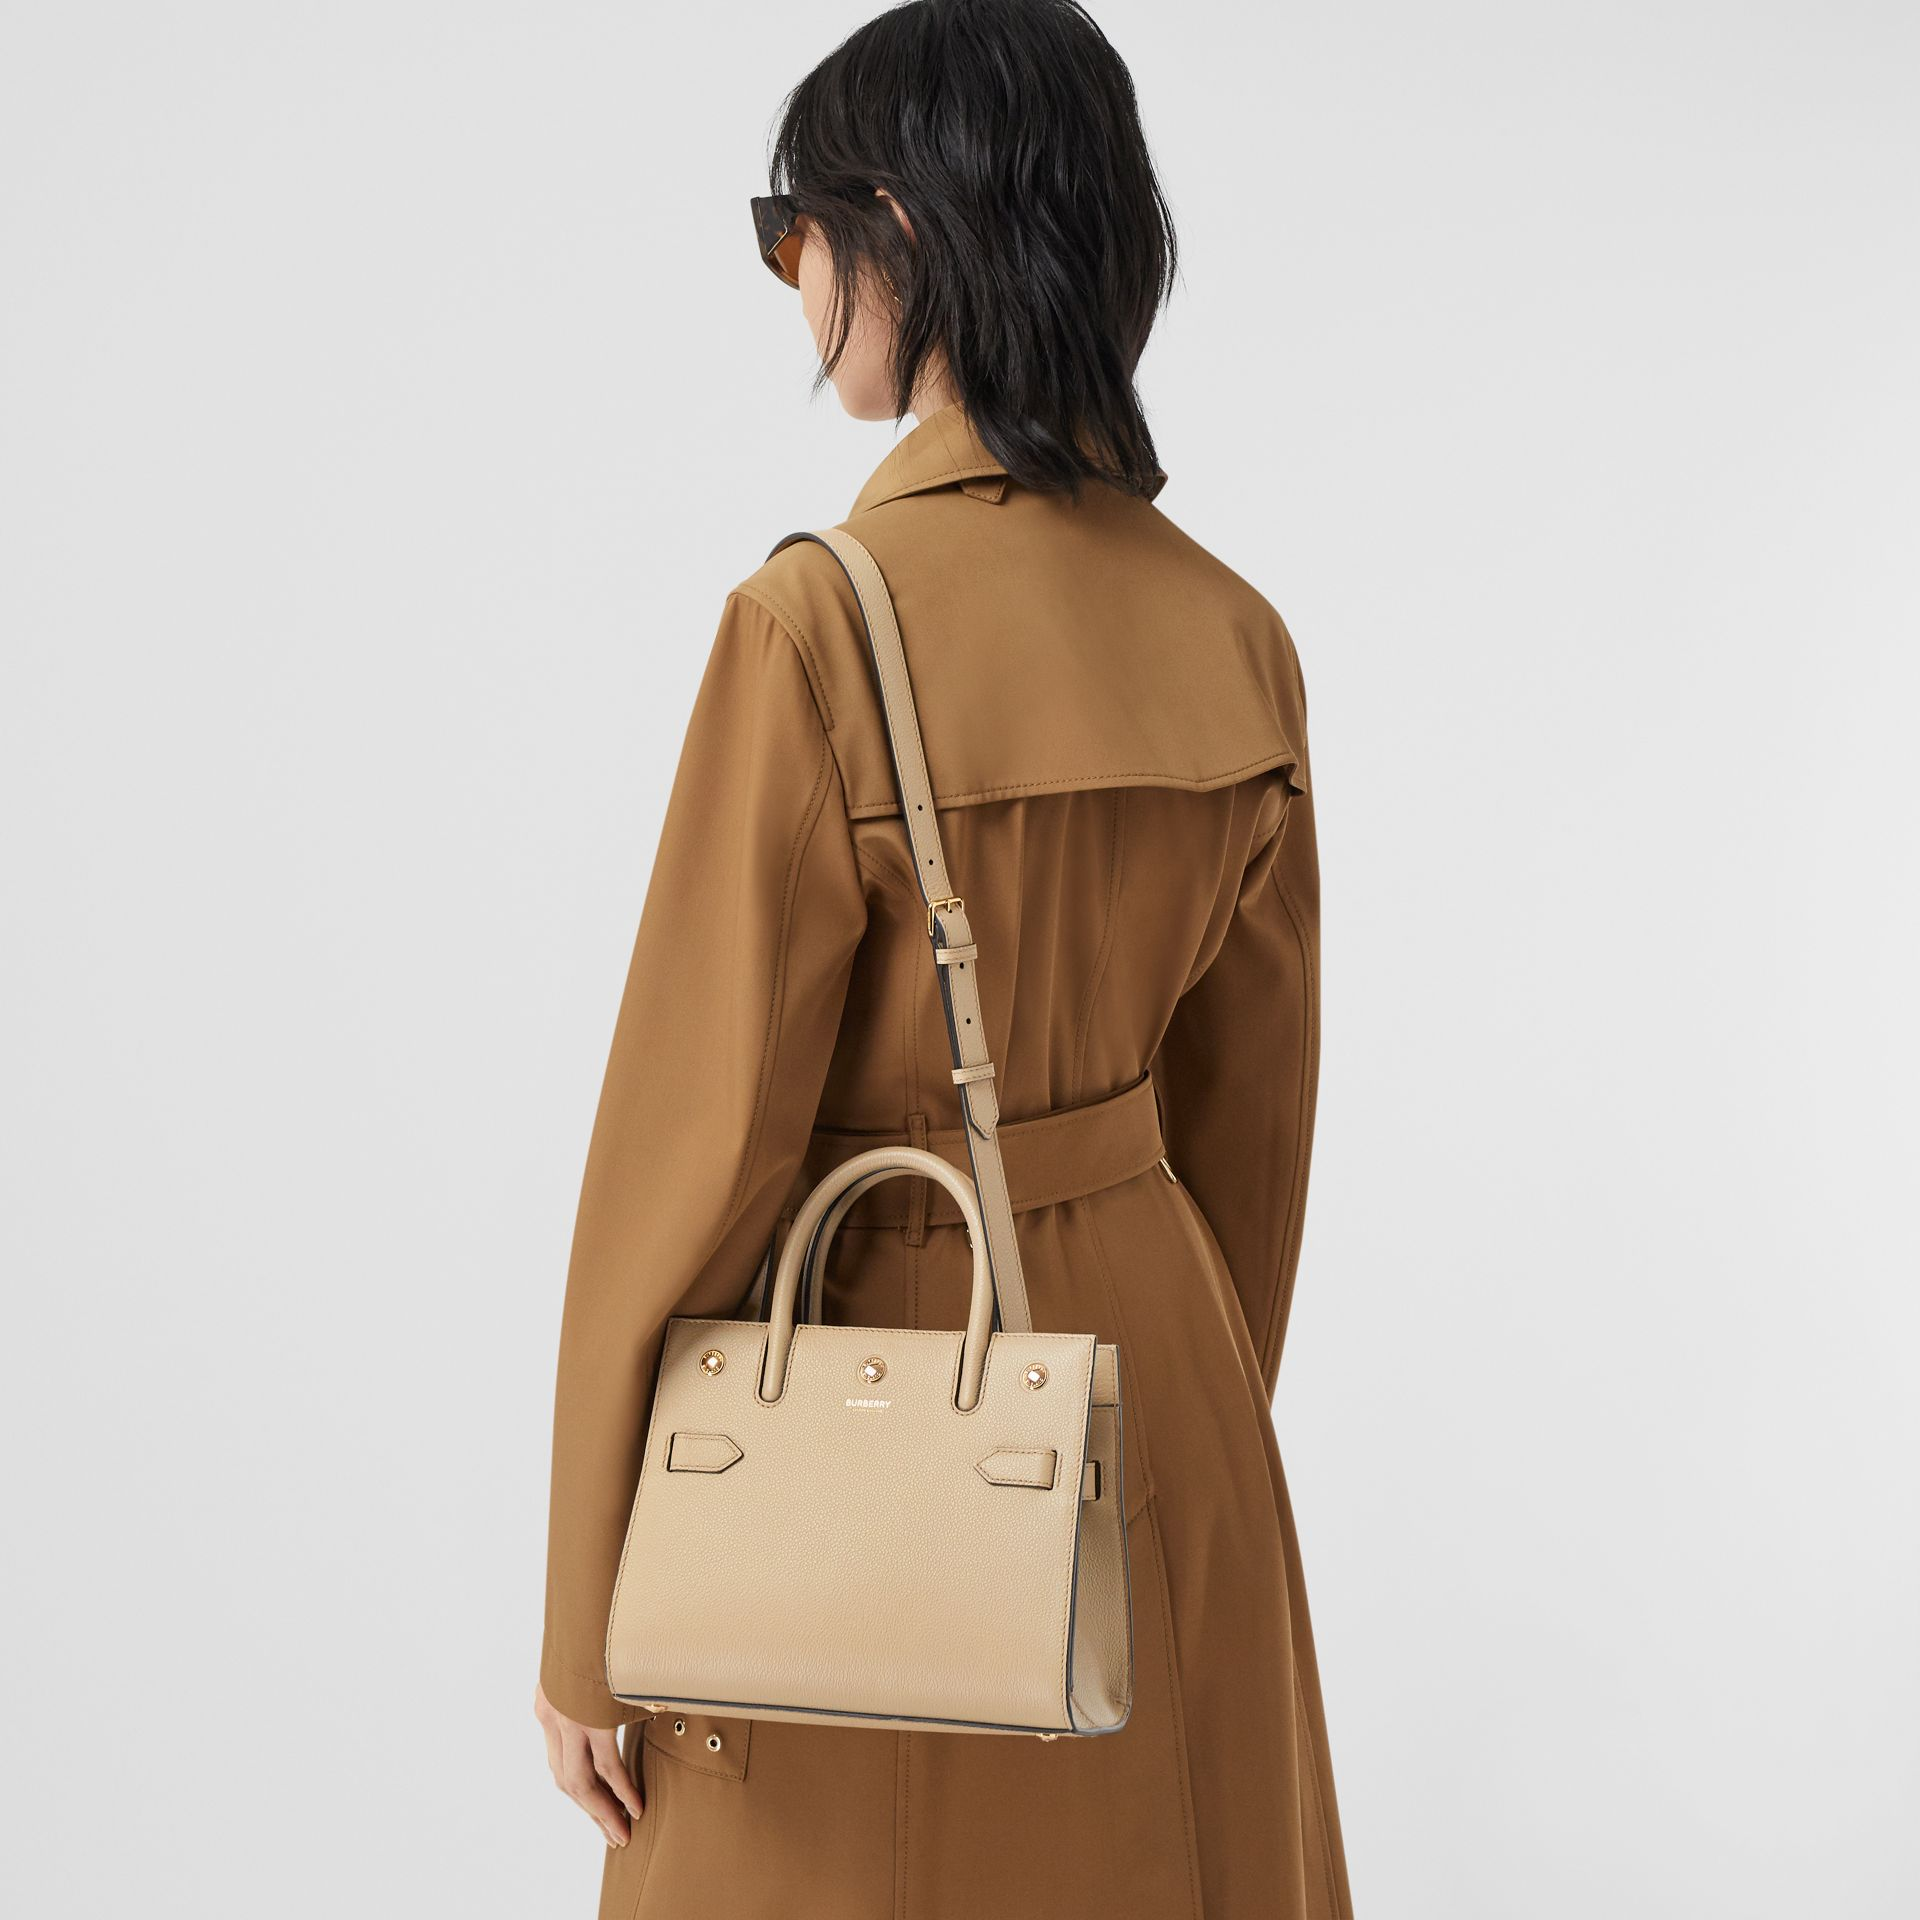 Mini Leather Two-handle Title Bag in Light Beige - Women | Burberry - gallery image 8